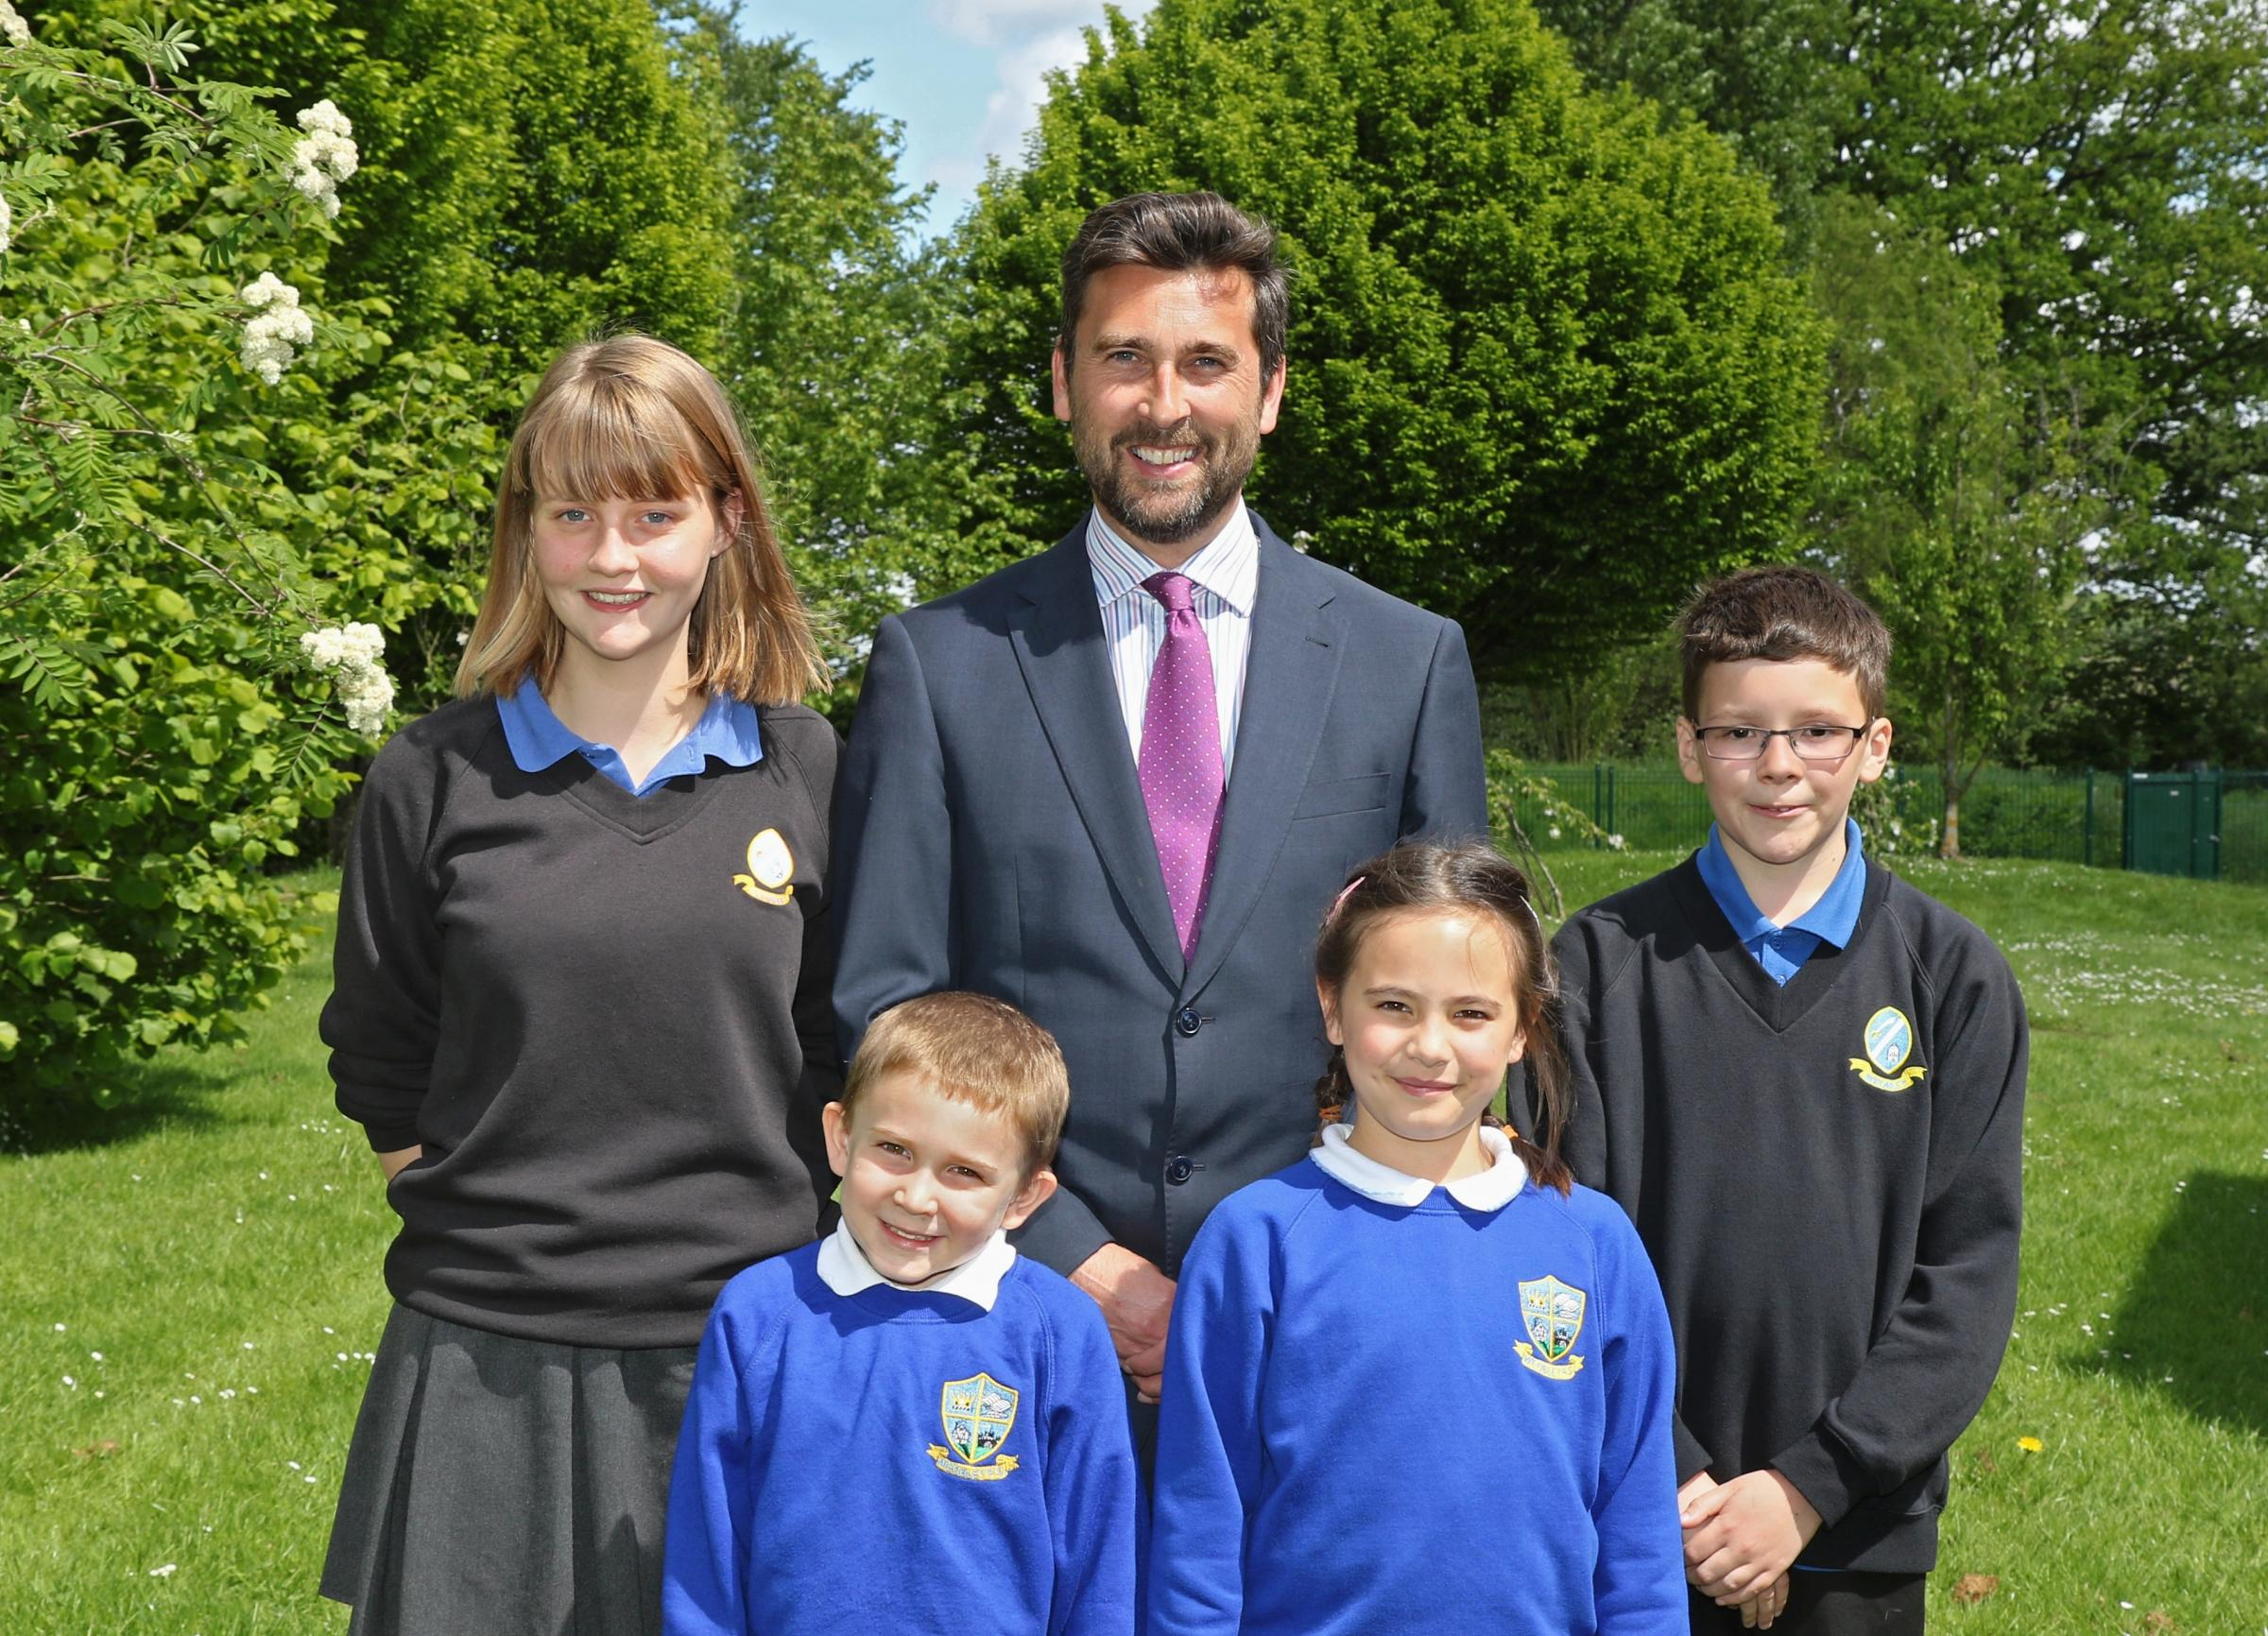 Year 10 pupil Phoebe Benbow, reception pupil Xander Weston, head teacher Dean Williams, Ellie Pilliner, from year three and Sam Carpenter from year seven. Photo: Emma Pollock.